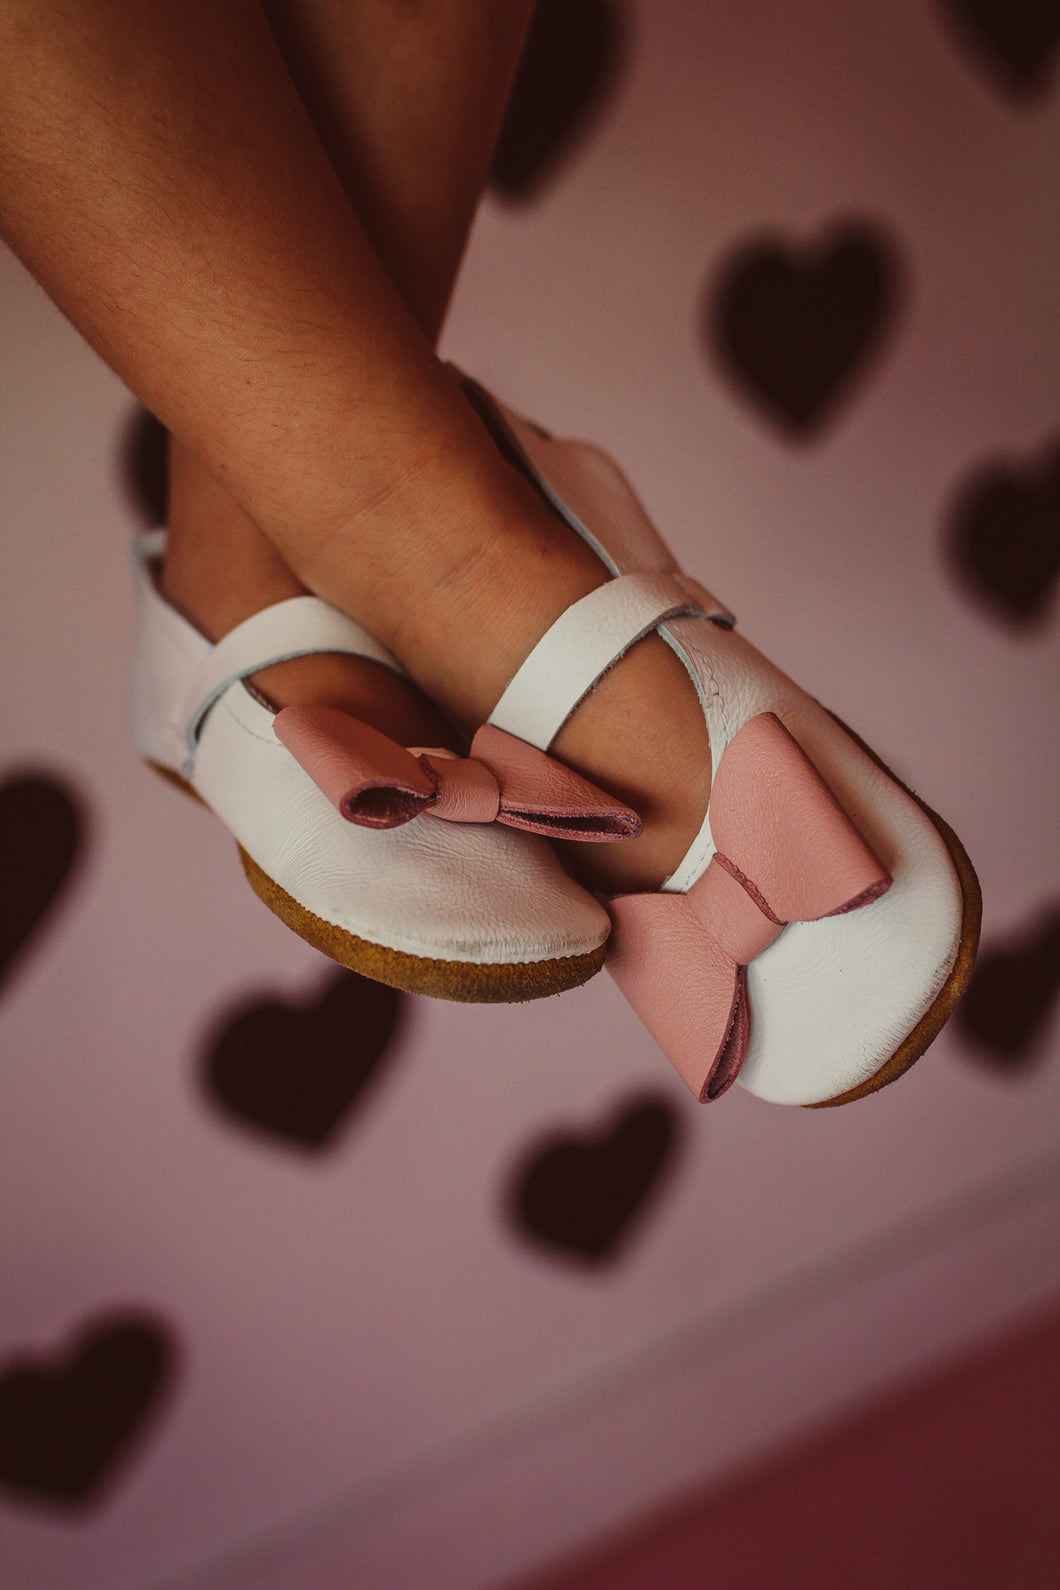 White Mary Janes/Straps and pink bow - LUXE + RO